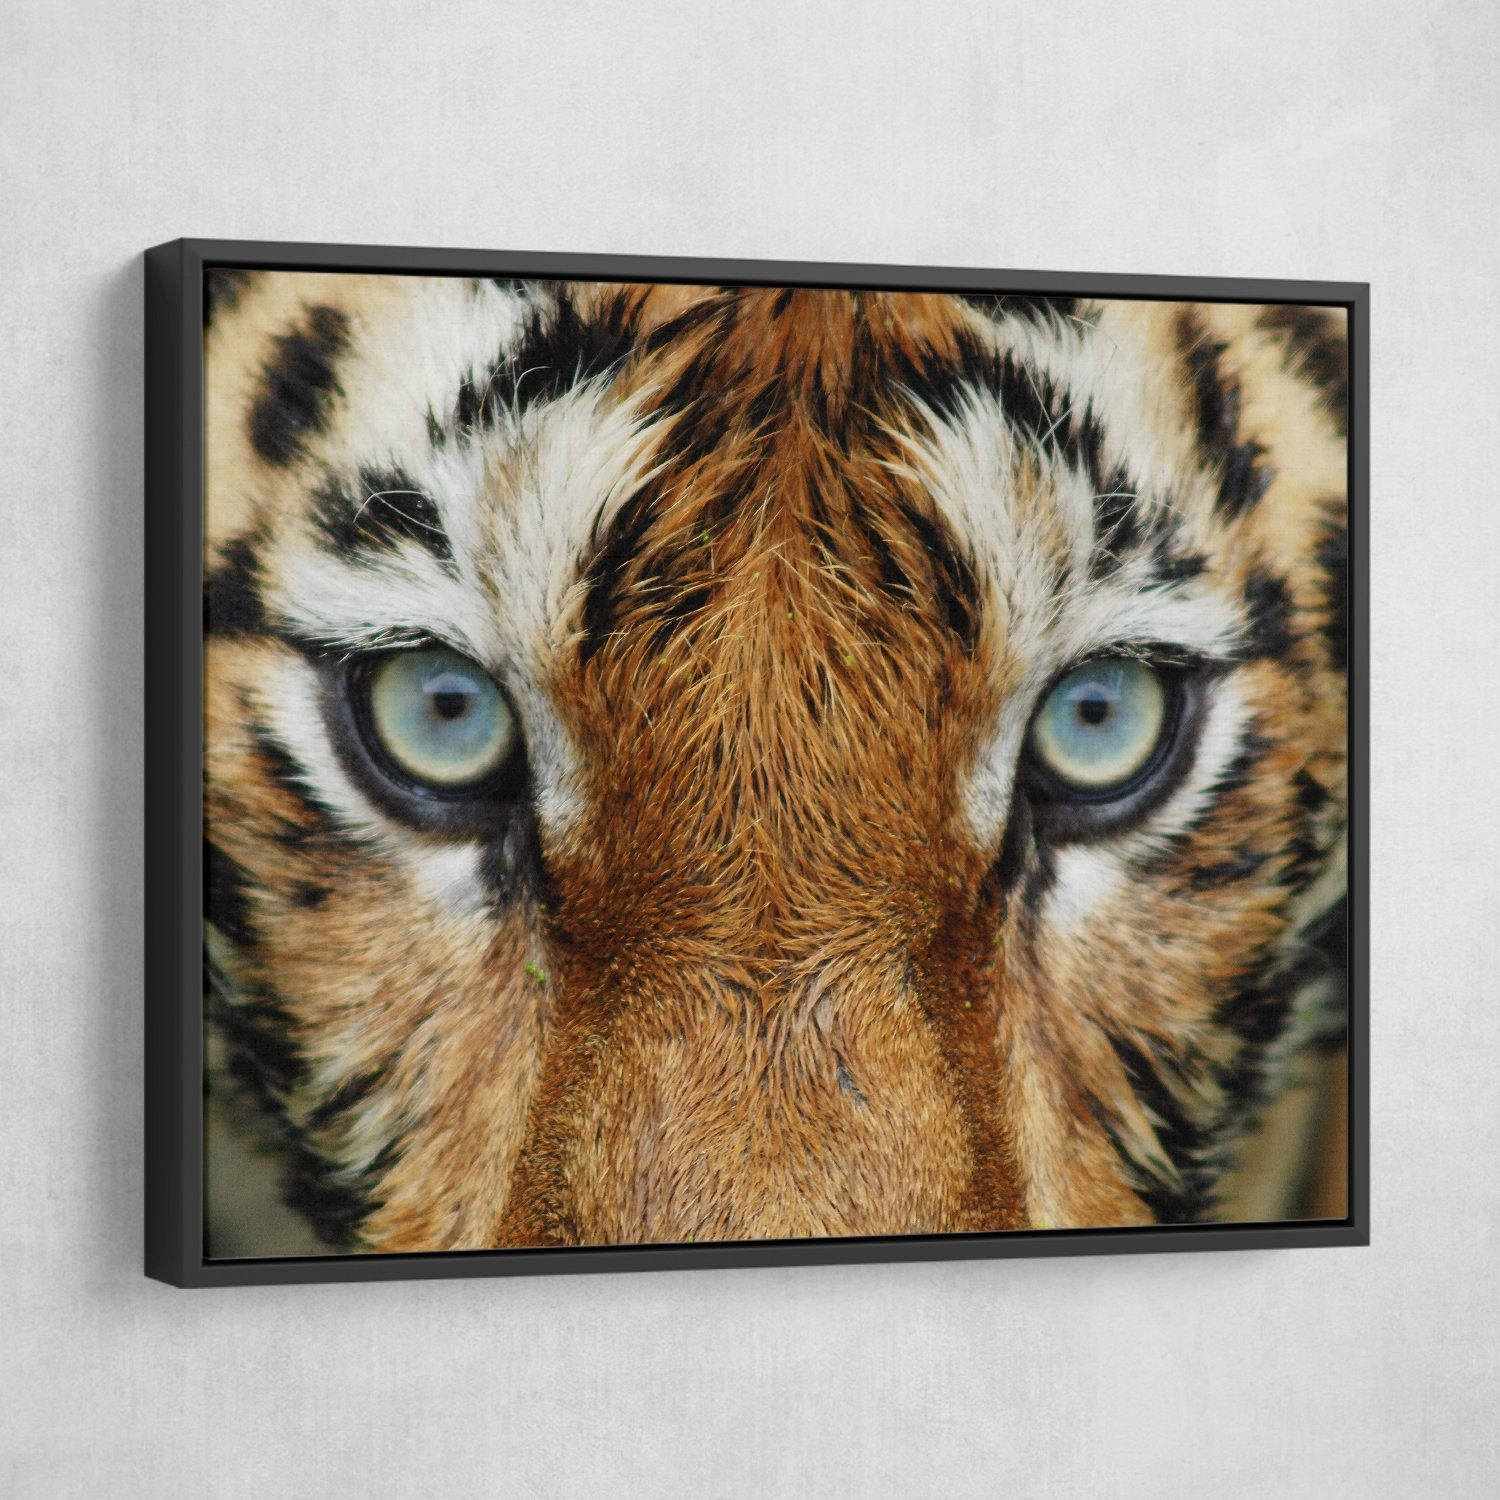 Tiger Eyes wall art floating frame